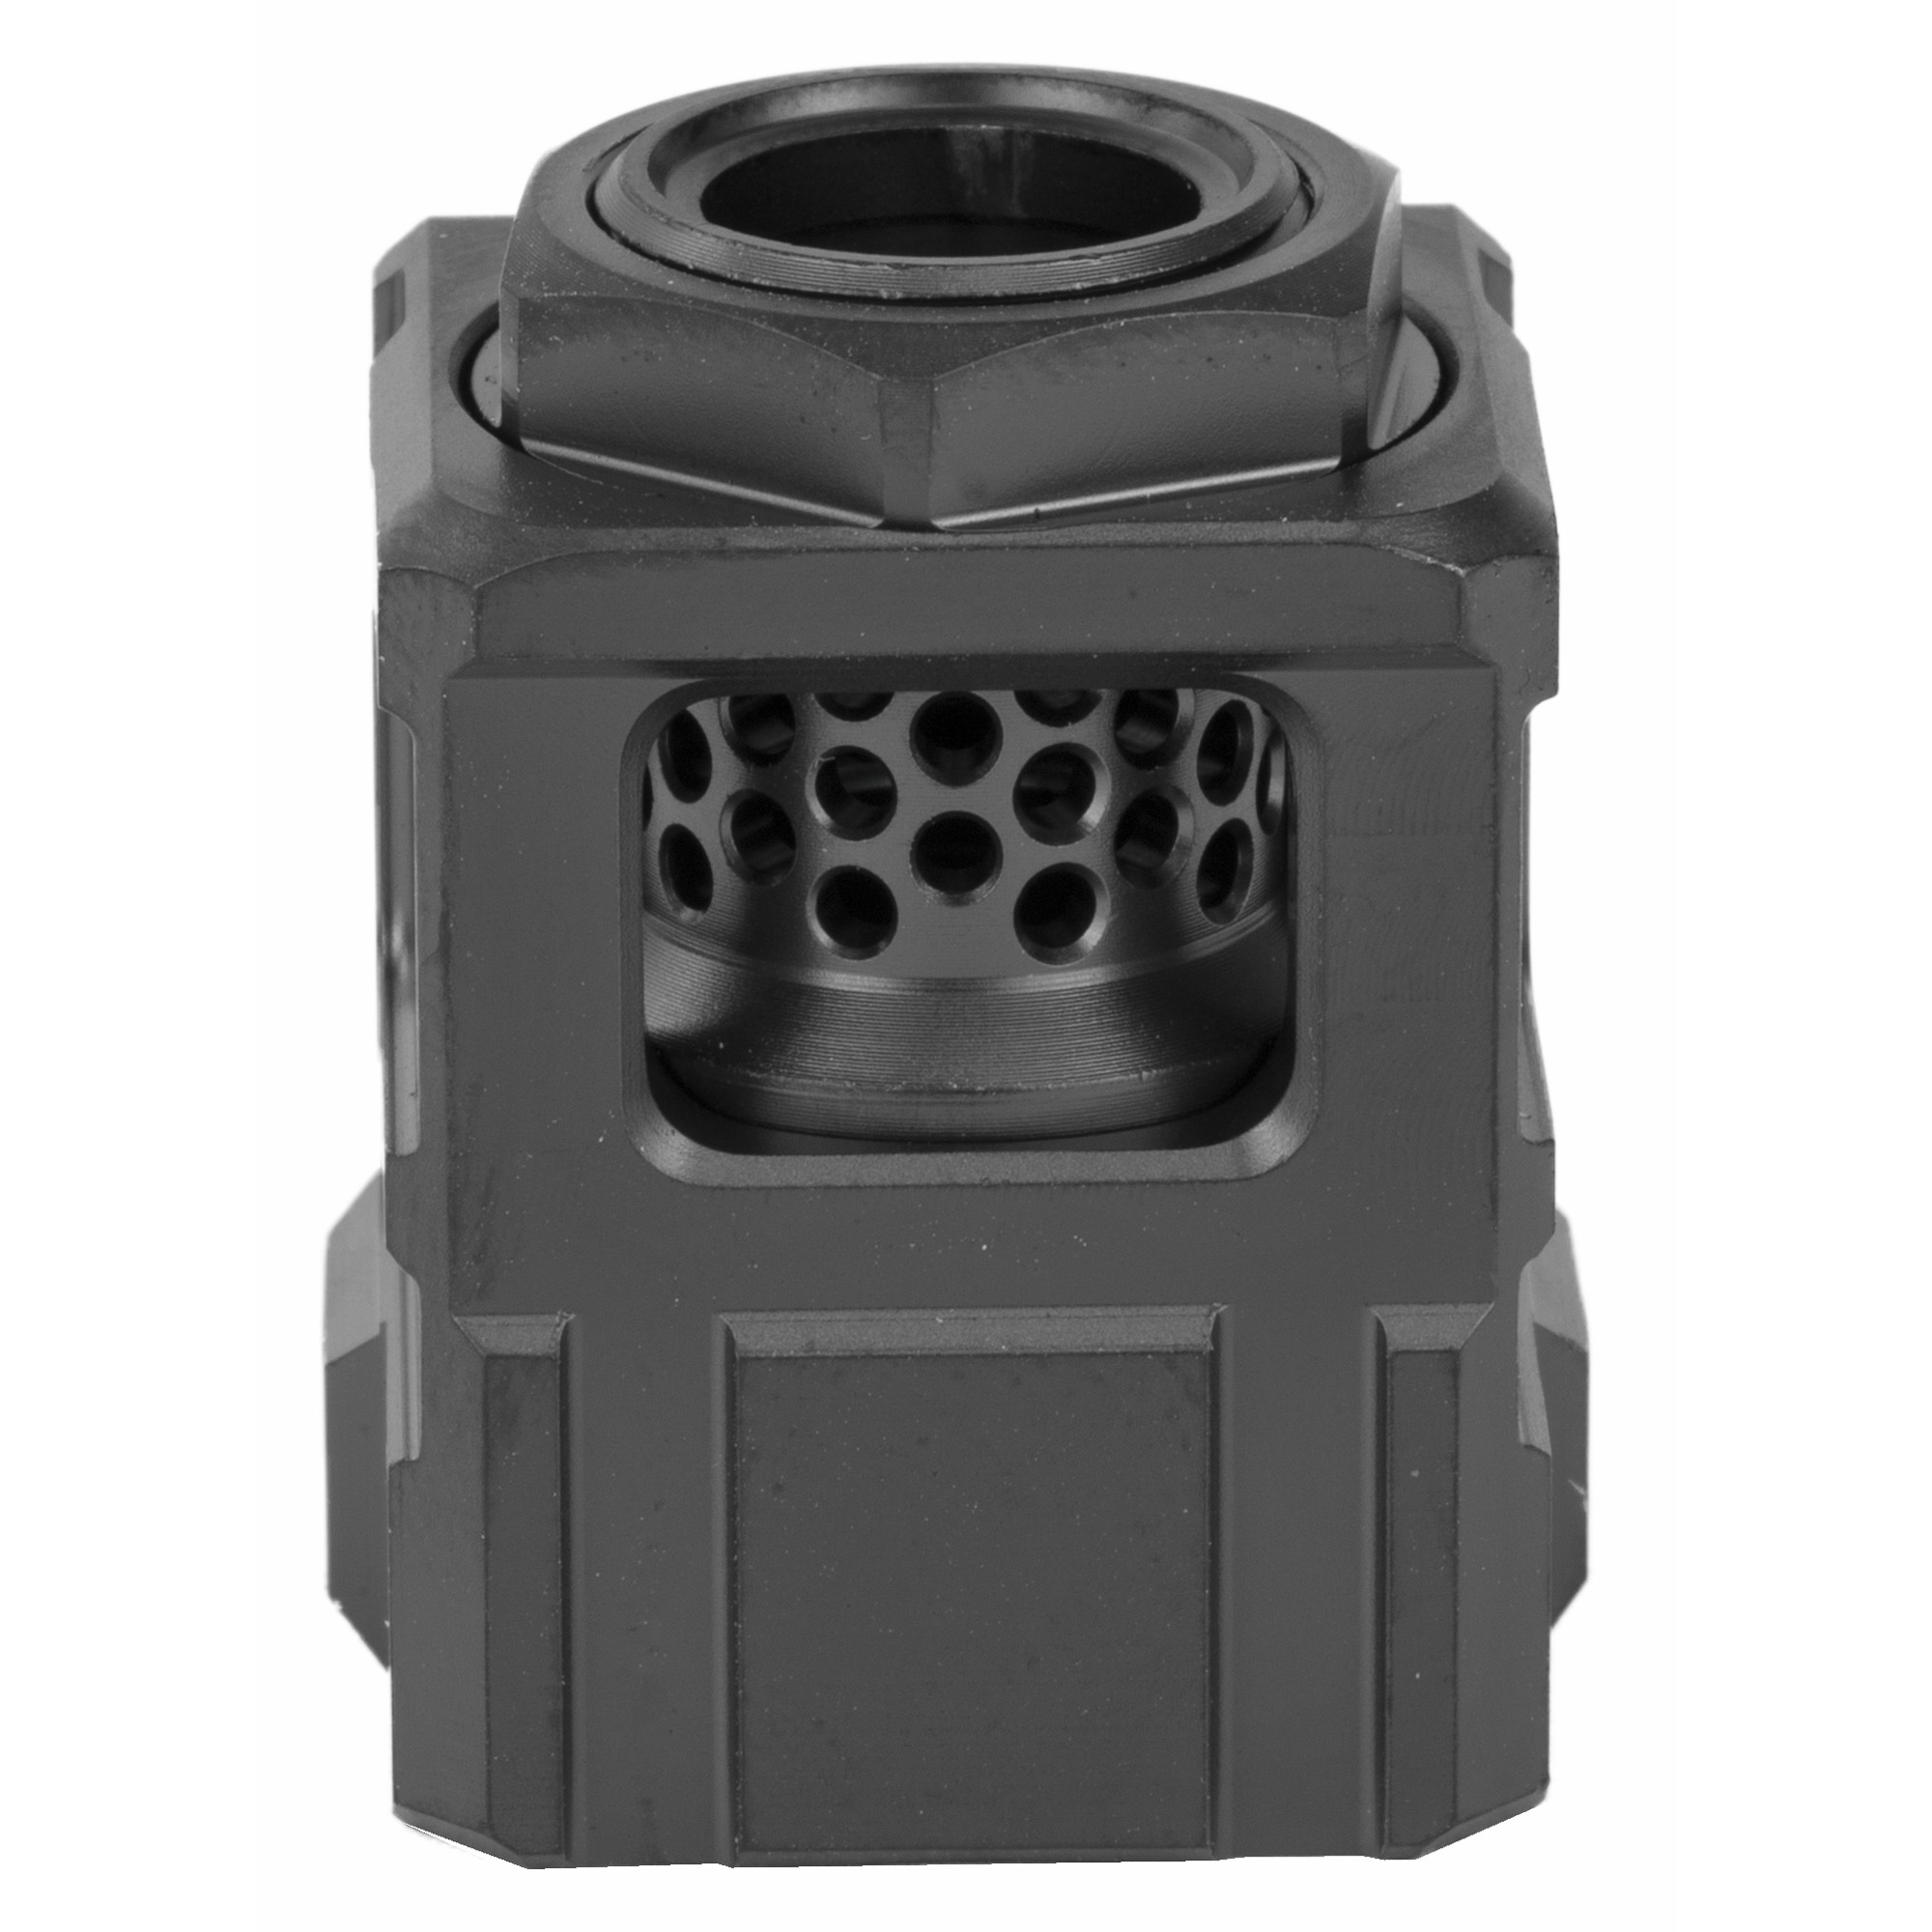 The Official Qube(TM) compensator is the first pistol compensator that doesn't require set screws. The compensator mount threads onto the barrel first and gets torqued down with a wrench. The Official Qube(TM) compensator body slides over the top of the compensator mount and shoulders against a taper. The lock nut threads onto the compensator mount and pinches the Official Qube(TM) compensator body against a second taper and locks it down which prevents rotation.